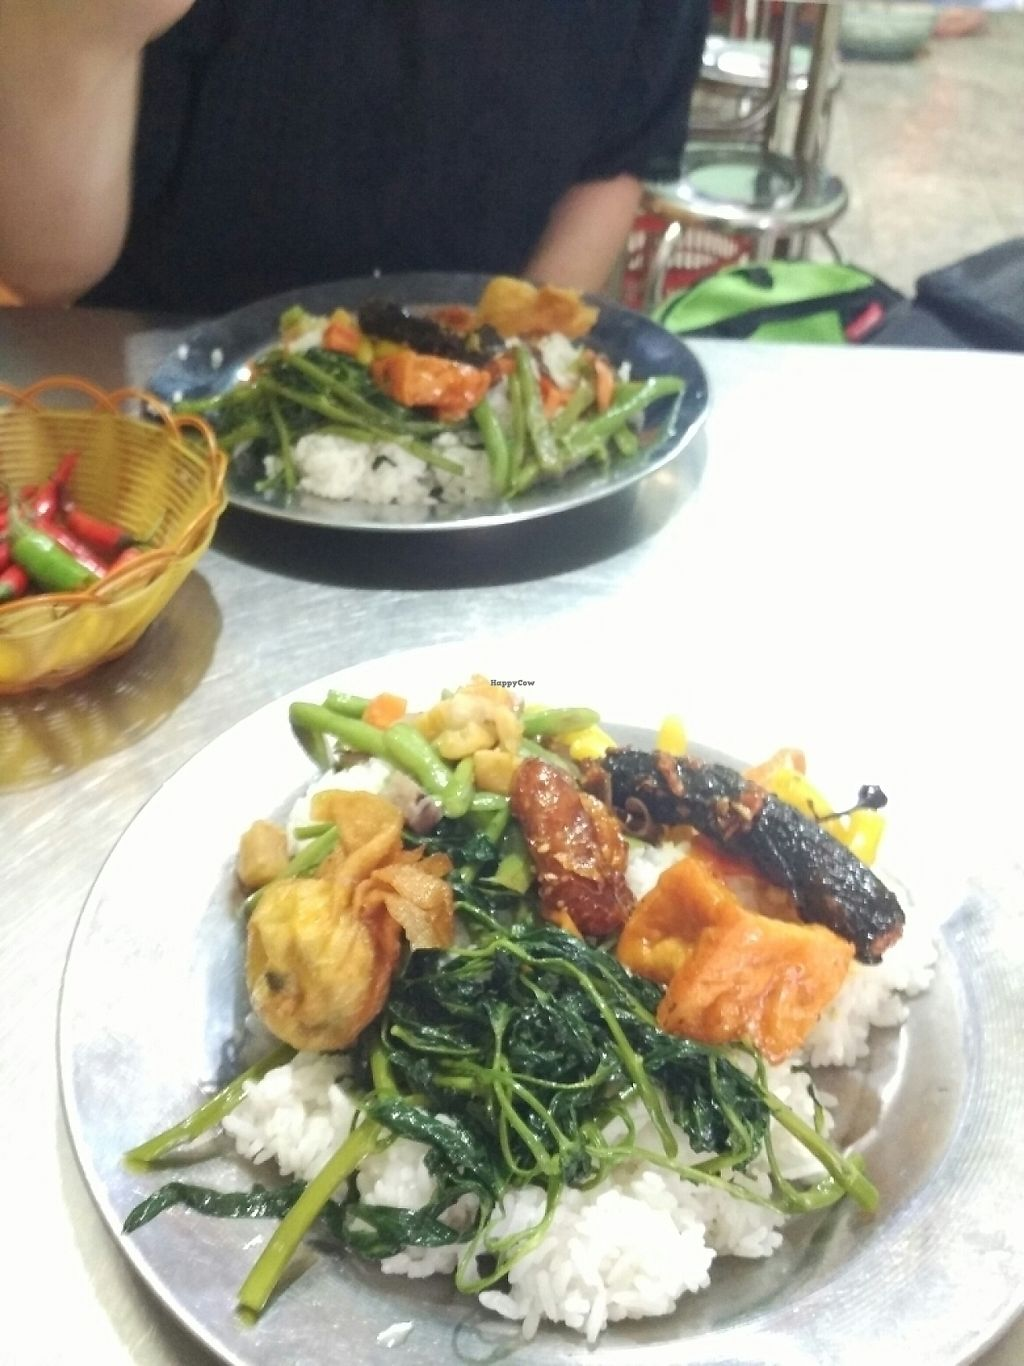 """Photo of Y Thien  by <a href=""""/members/profile/MiguelBraz"""">MiguelBraz</a> <br/>yumm <br/> May 21, 2017  - <a href='/contact/abuse/image/25867/260920'>Report</a>"""